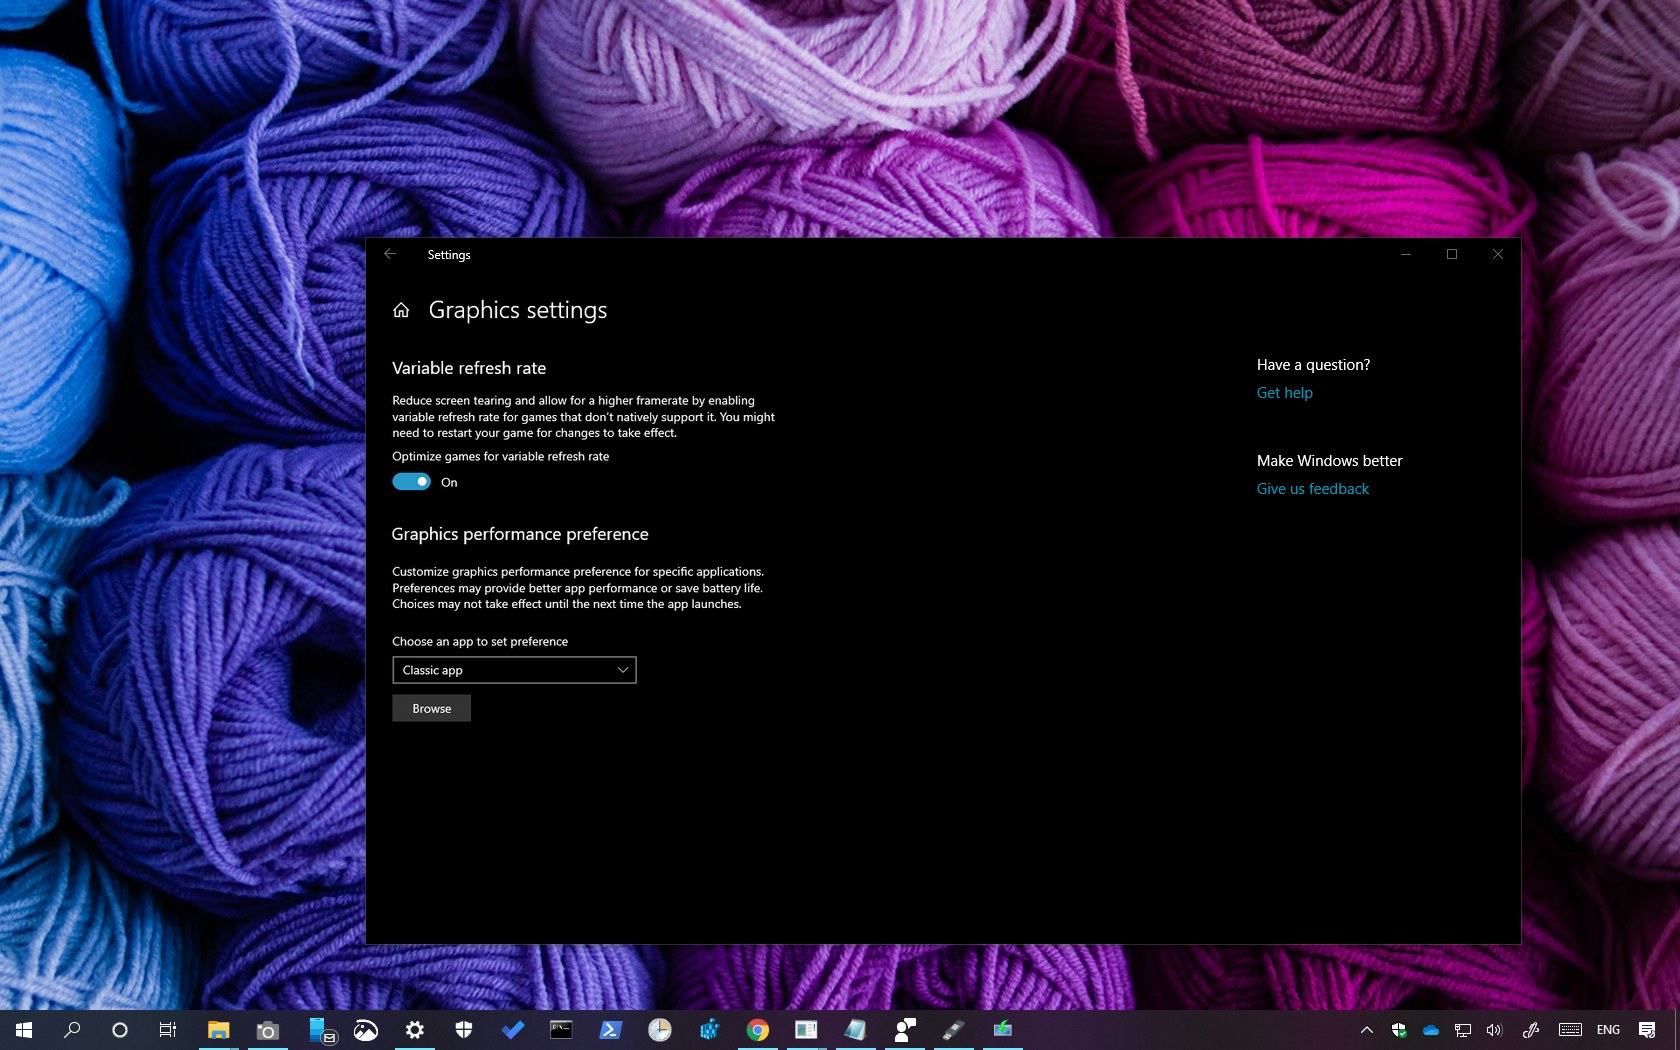 Variable refresh rate (VRR) on Windows 10 1903 and later